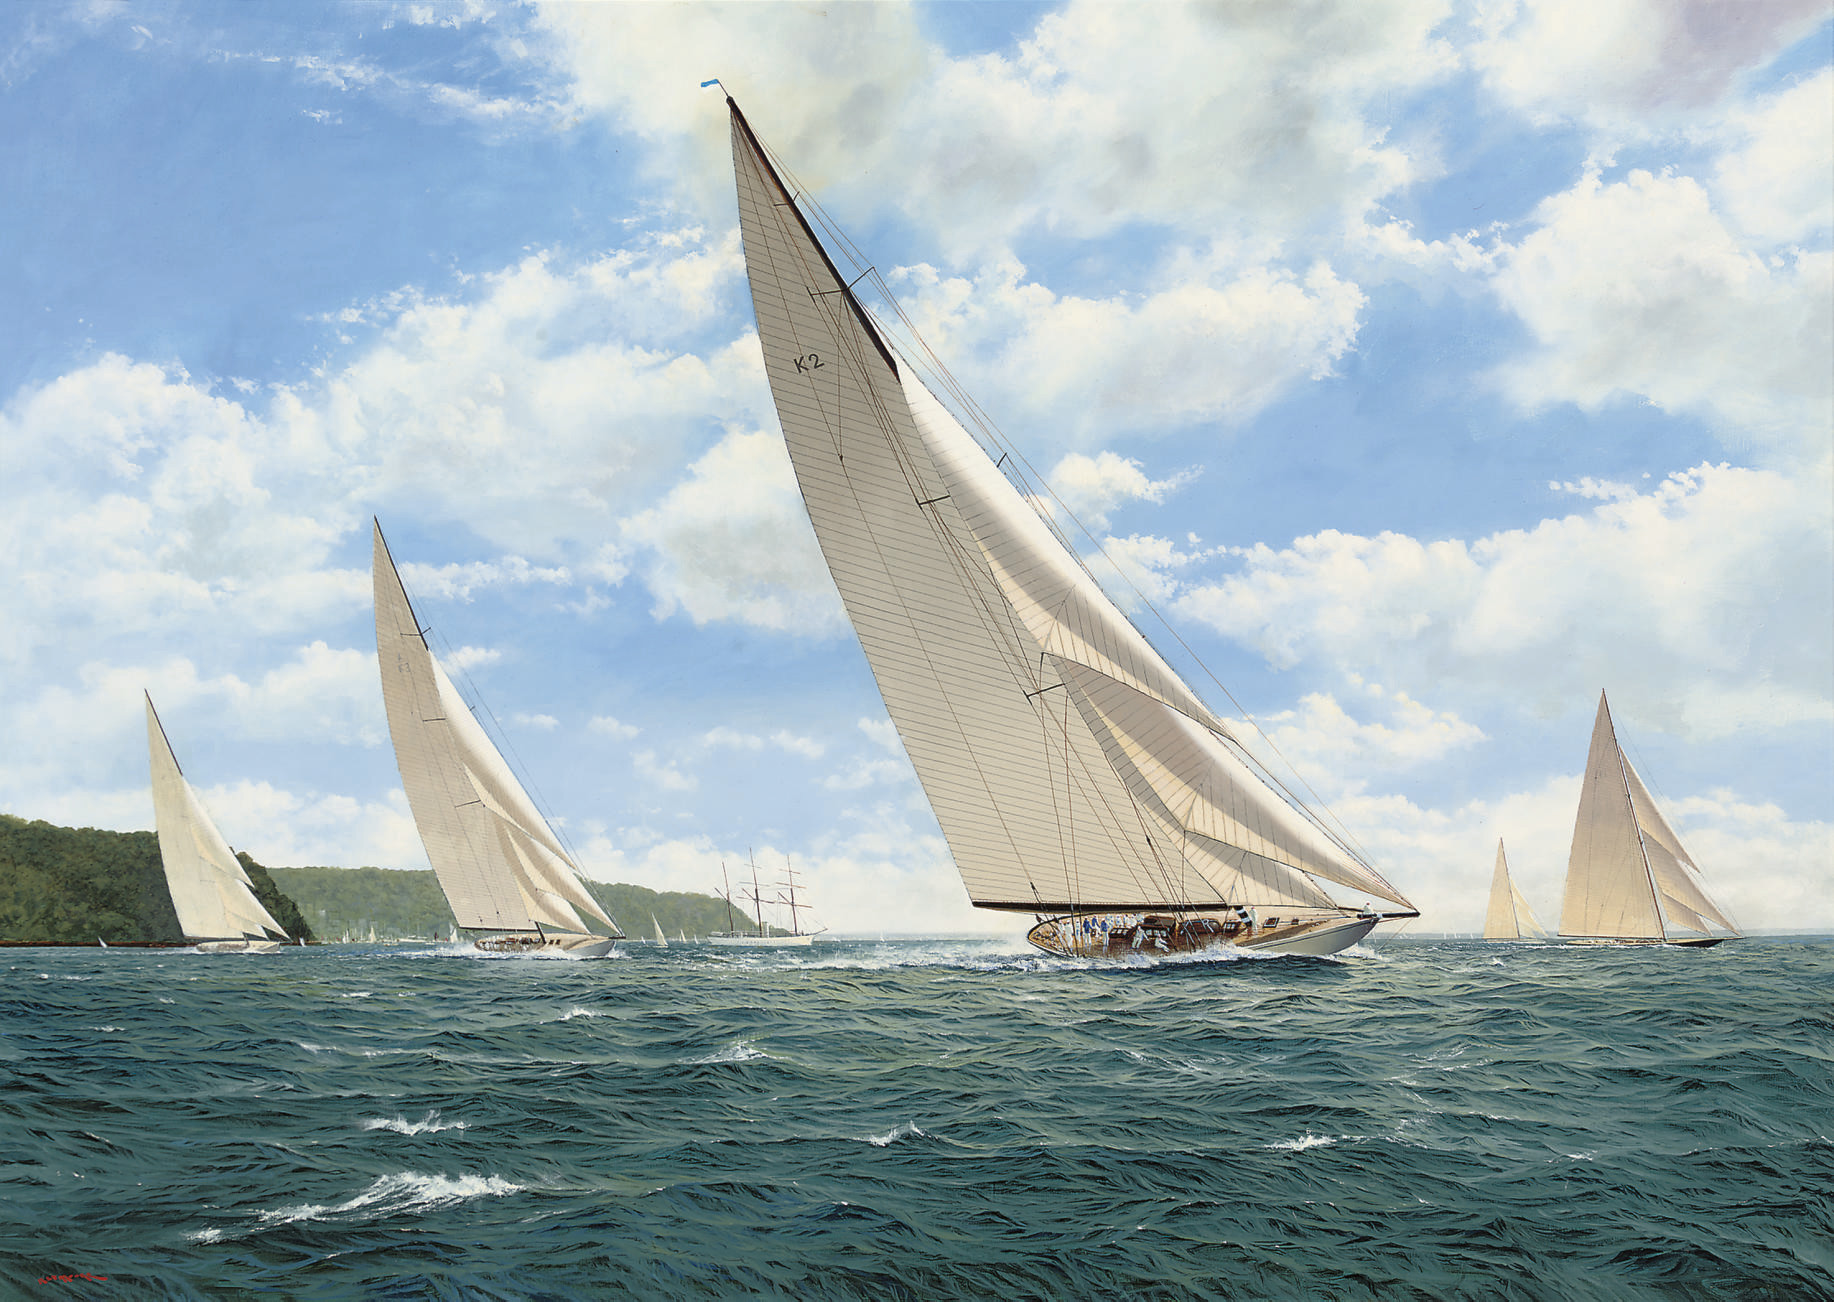 Astra (K2) leading the pack, including Britannia (K1) and Shamrock V (K3), off Cowes, with Sir Thomas Lipton's steam yacht Erin anchored in the bay beyond